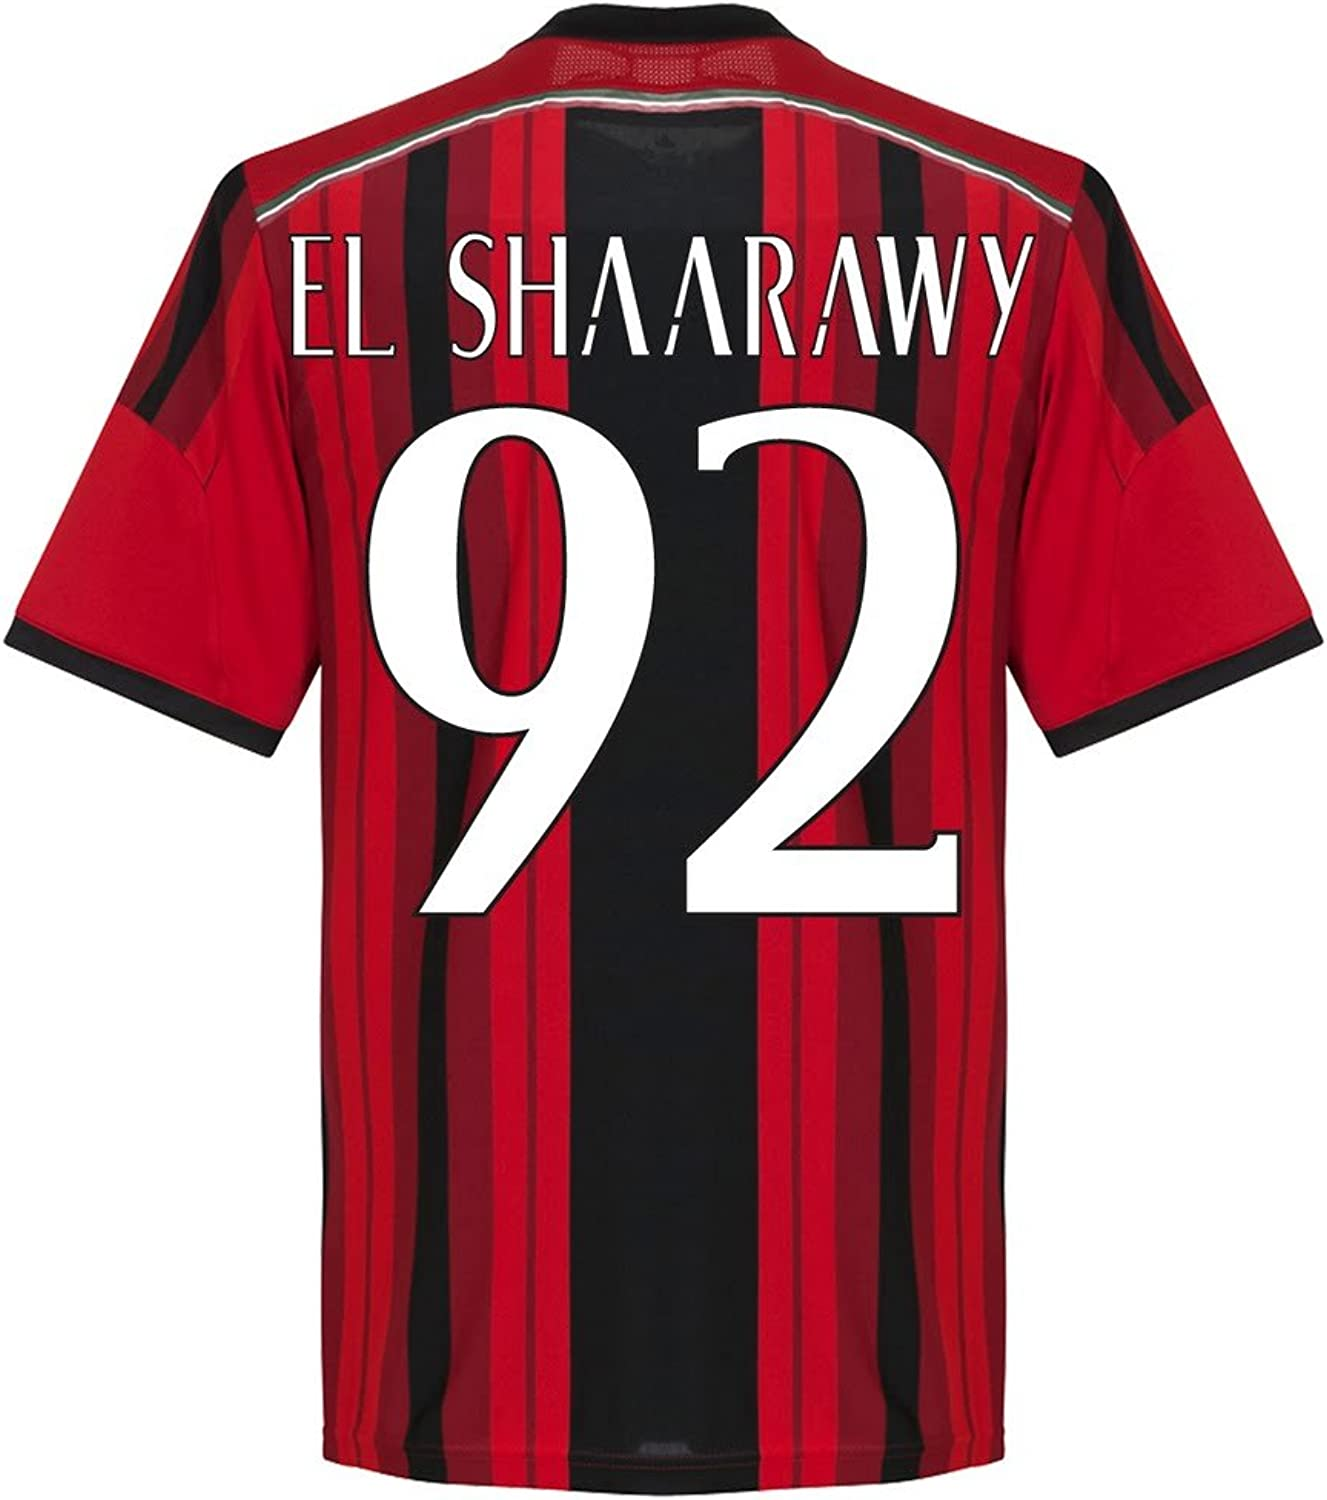 Adidas AC Milan Home Home Home EL Shaarawy Jersey 2014 2015 (Fan Style Printing) - XX Large B00OHWMSI4  Angenehmes Aussehen 84e03a